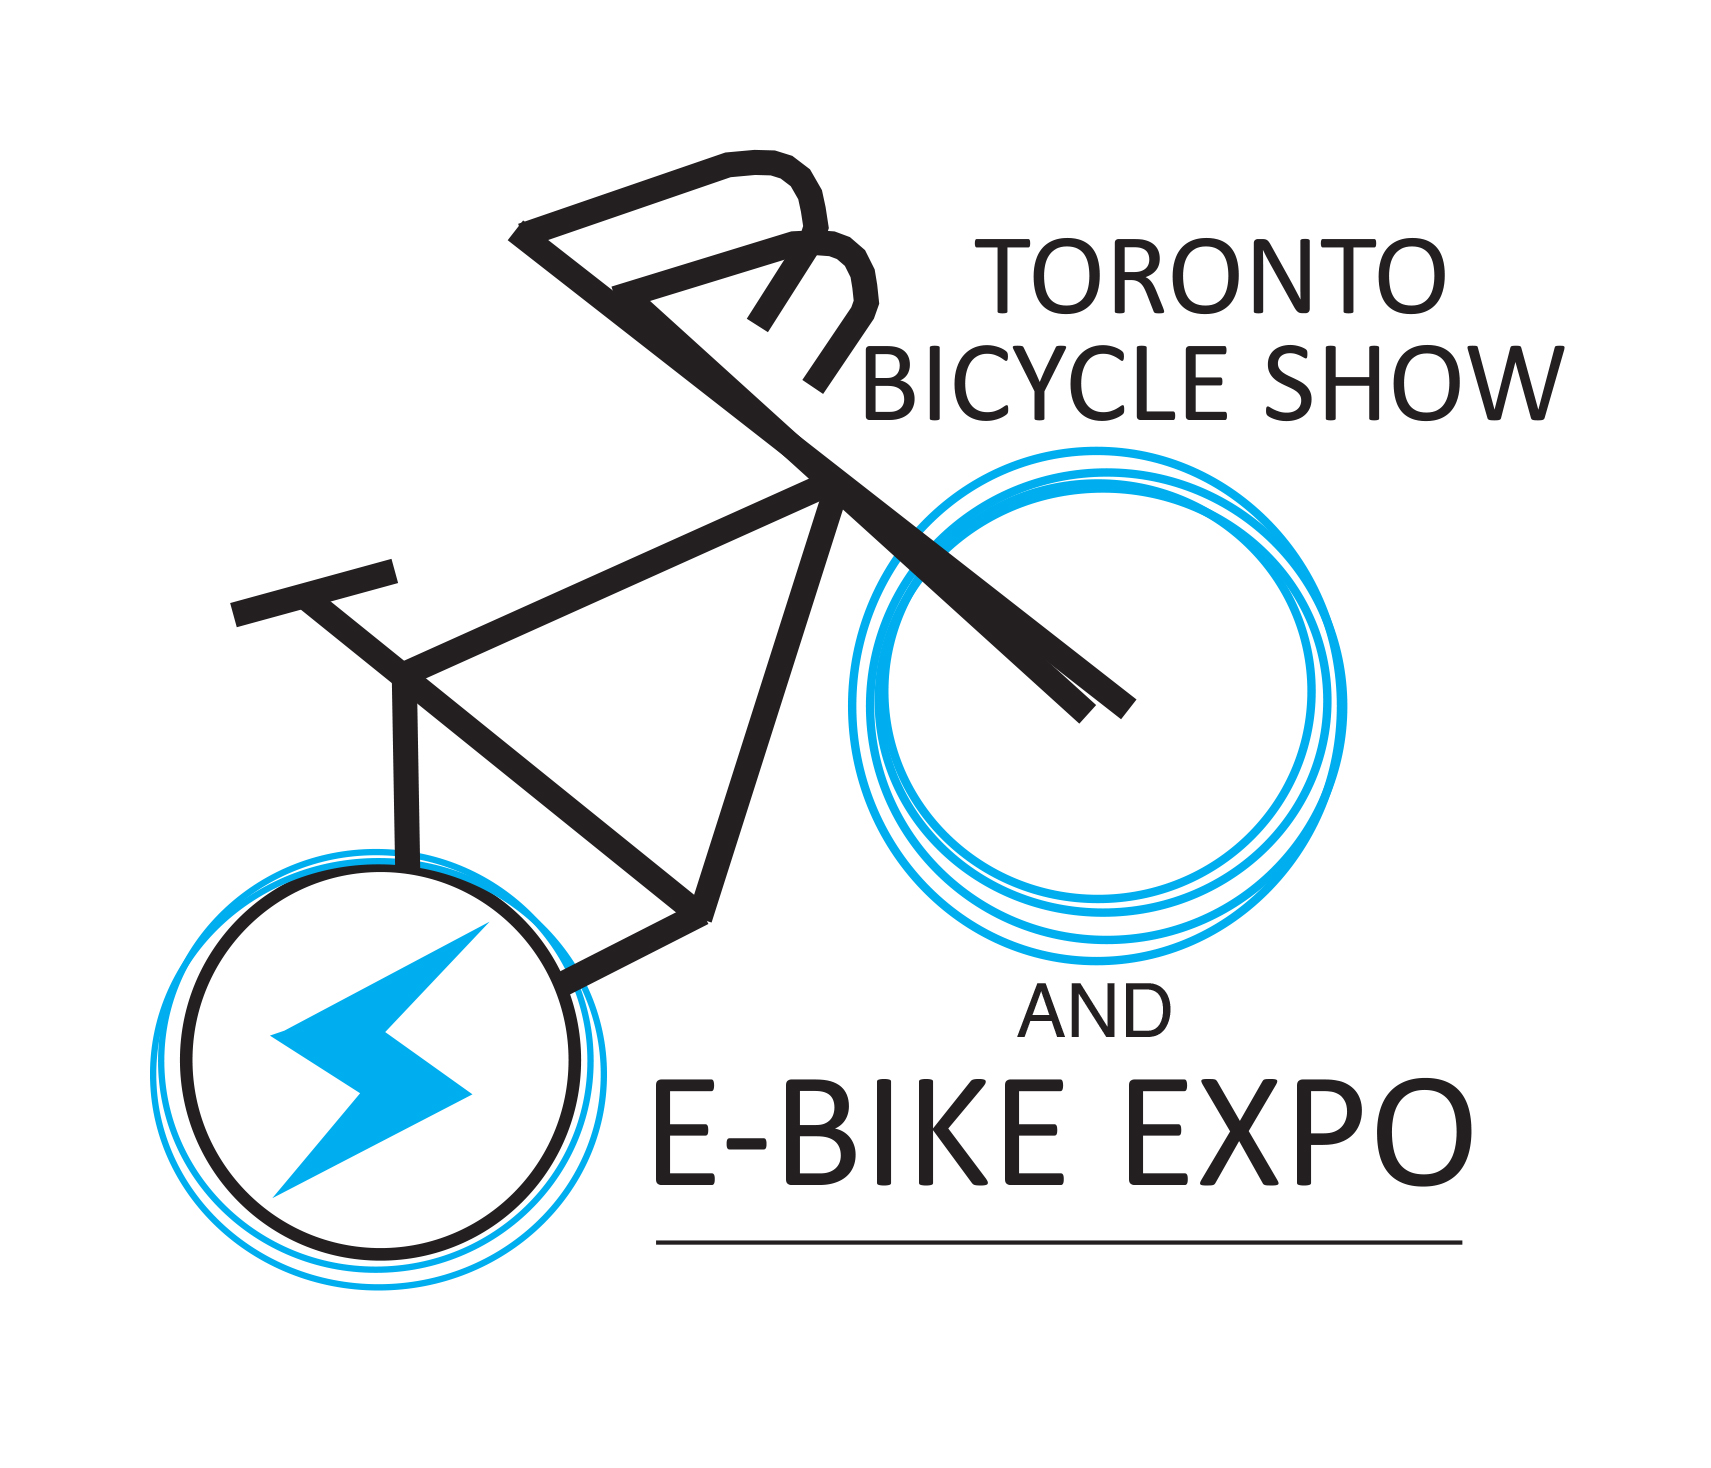 Toronto Bicycle Show and E-Bike Expo